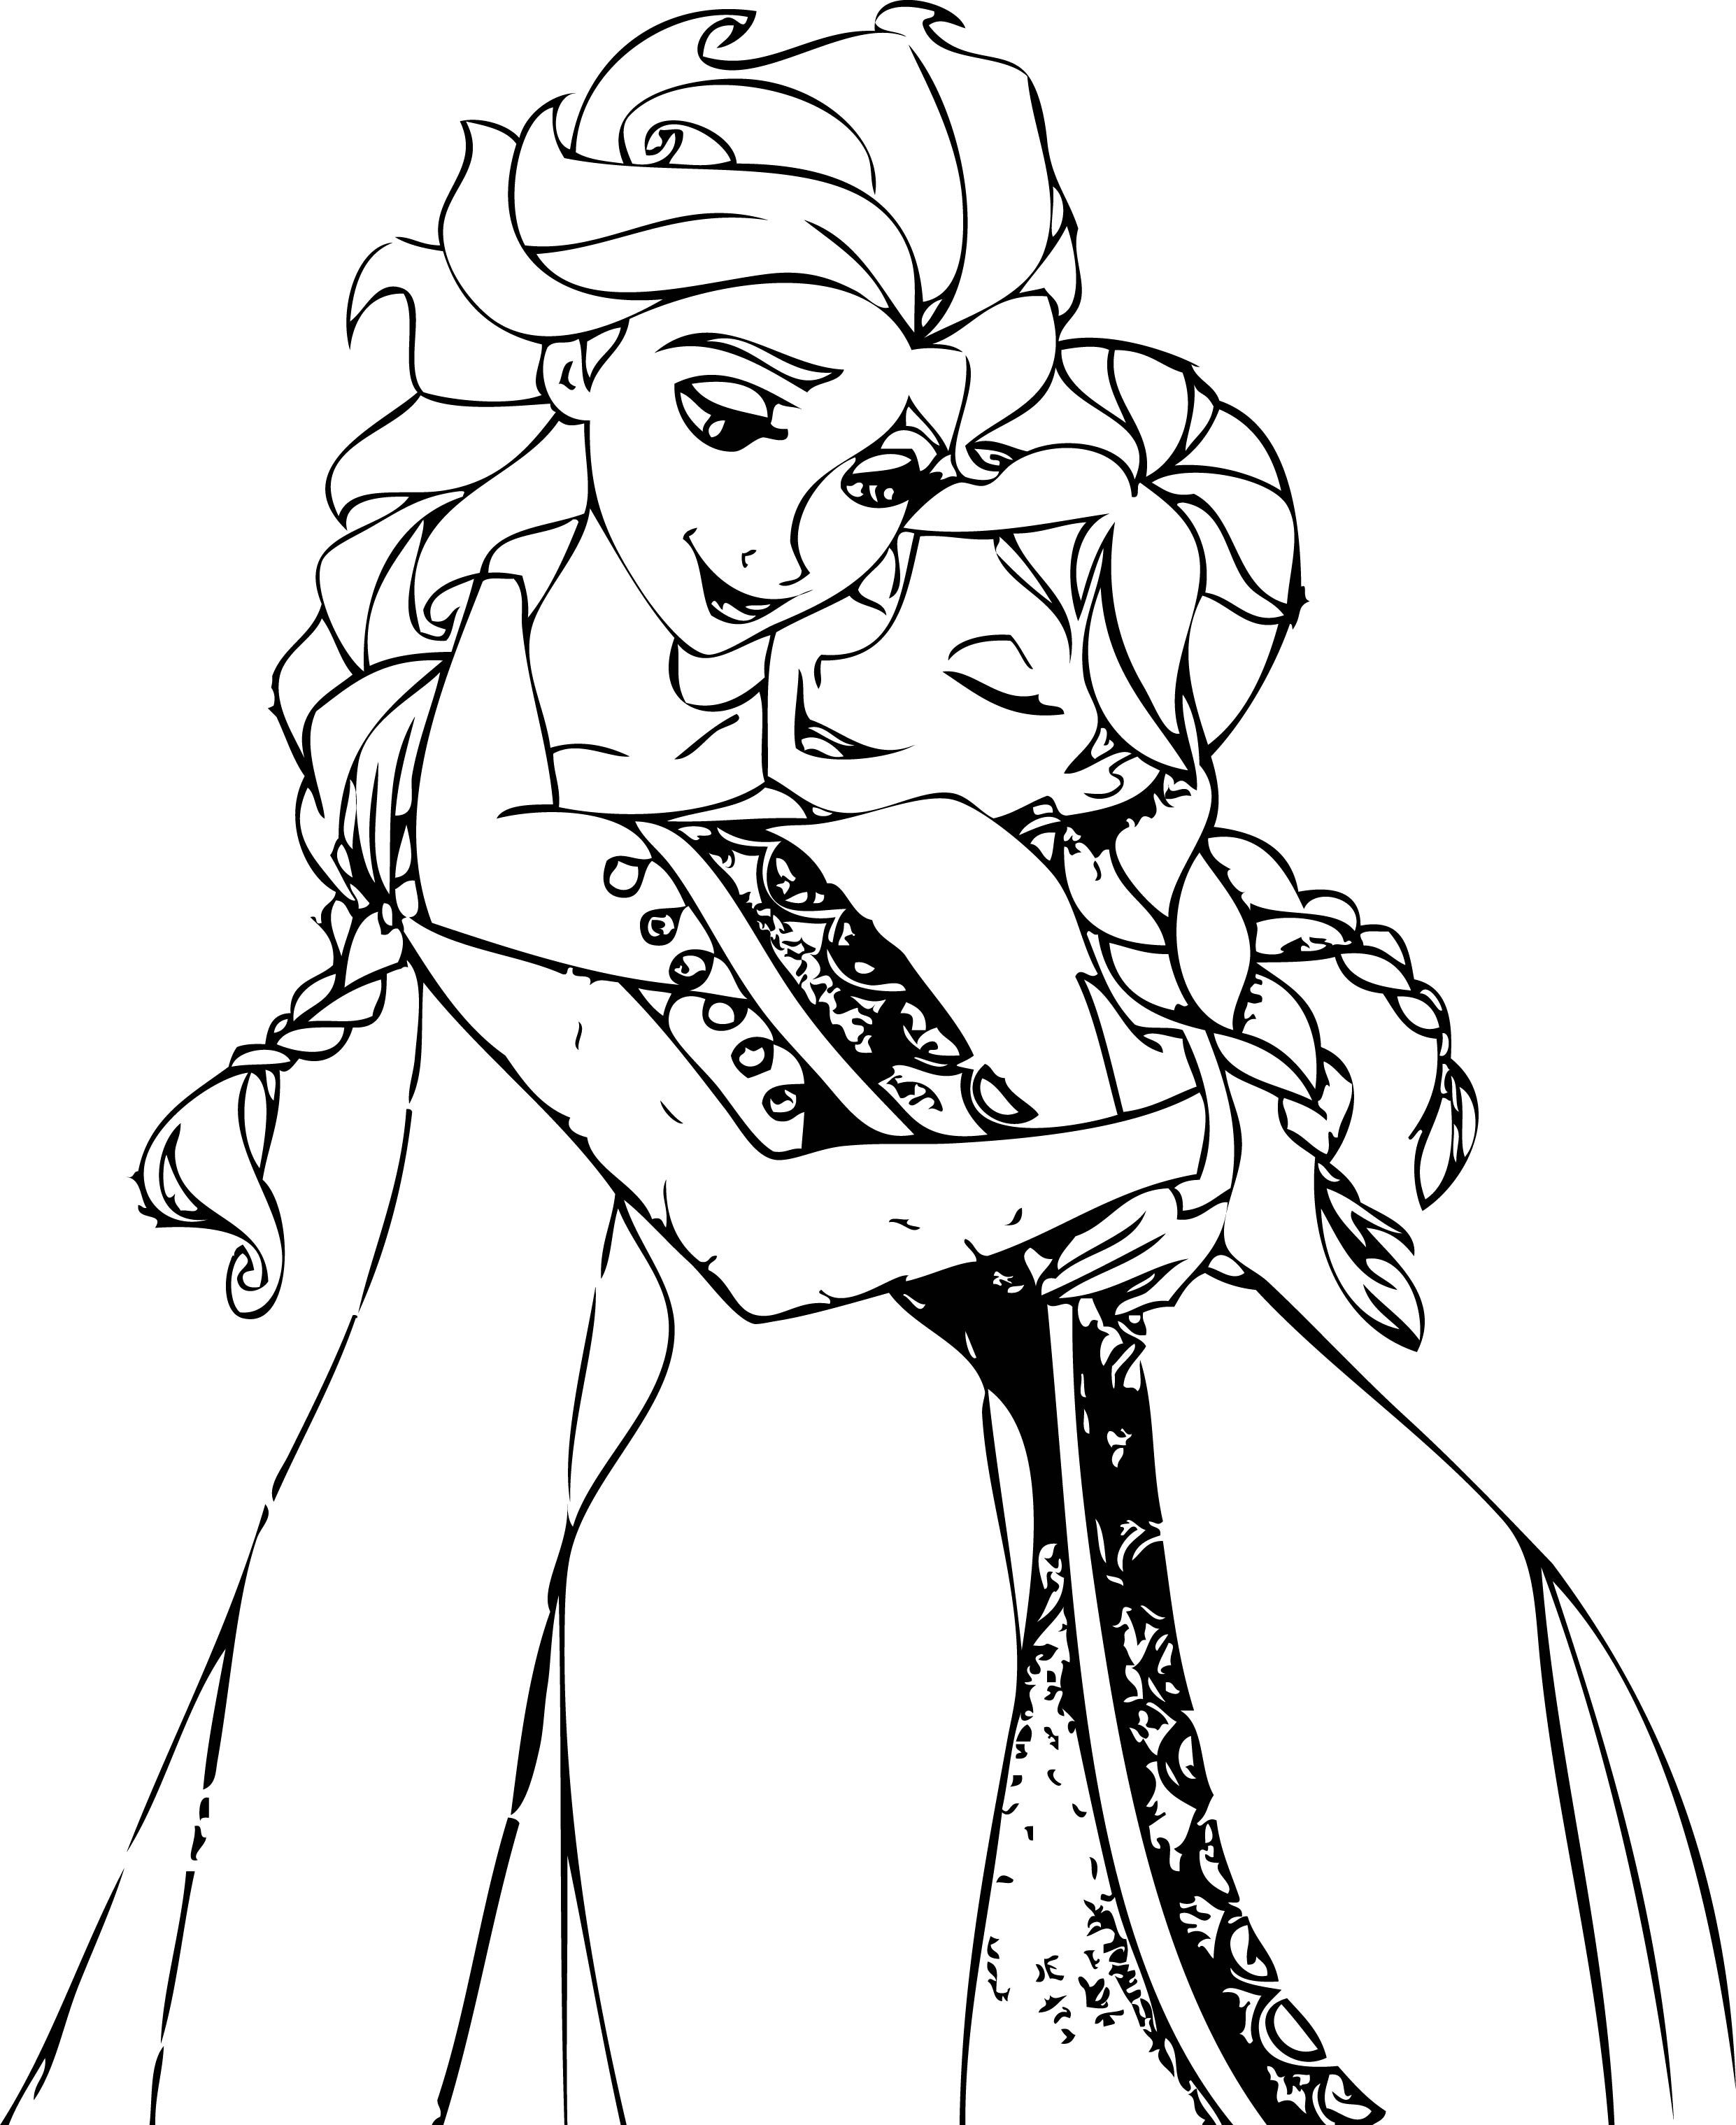 Elsa And Anna Hug Coloring Page Wecoloringpage Elsa Coloring Pages Princess Coloring Pages Frozen Coloring Pages